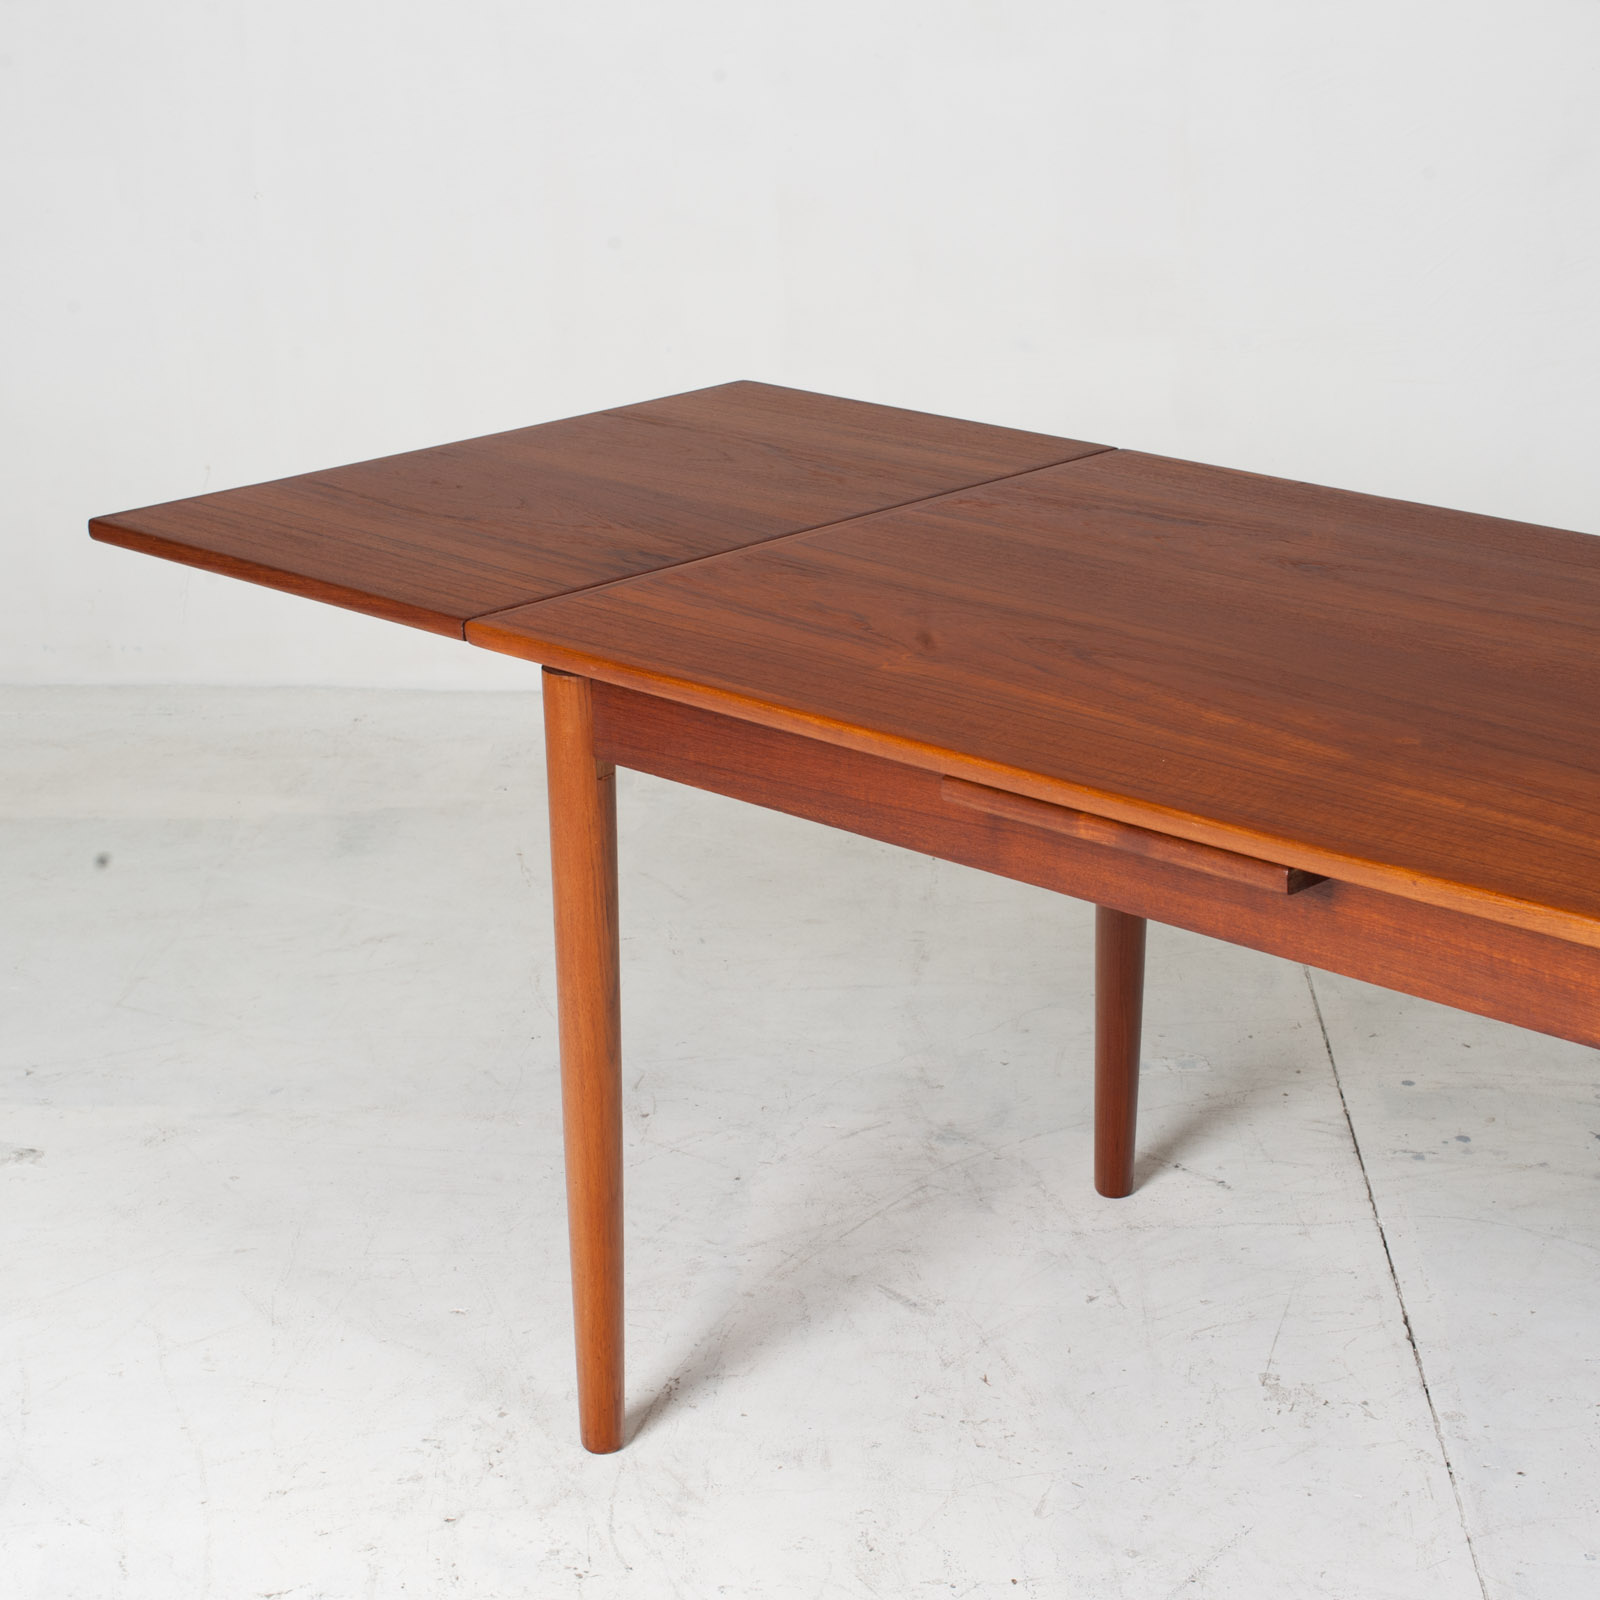 Rectangular Dining Table With Solid Edge In Teak 11